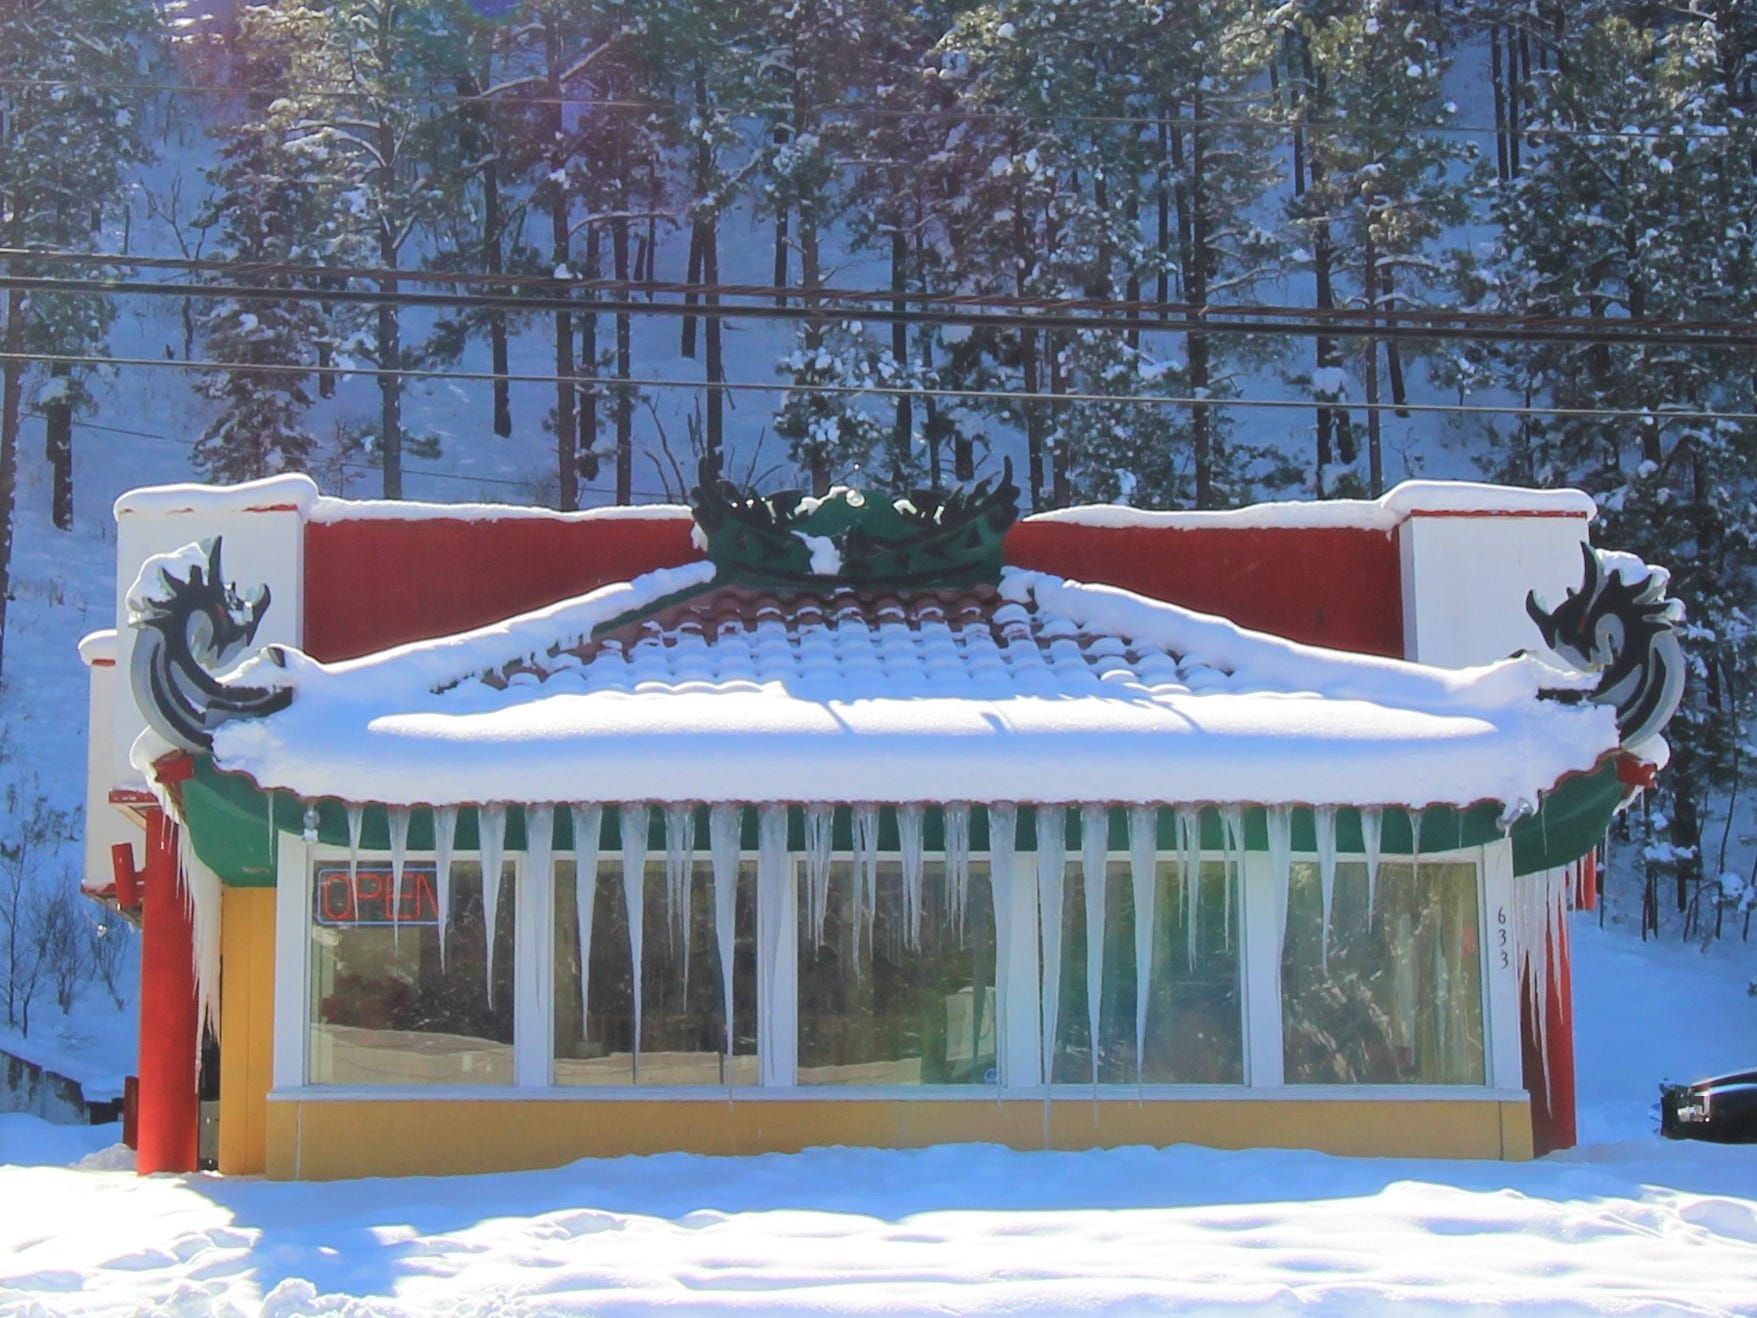 Icicles form throughout Ruidoso making the winter wonderland even more spectacular.